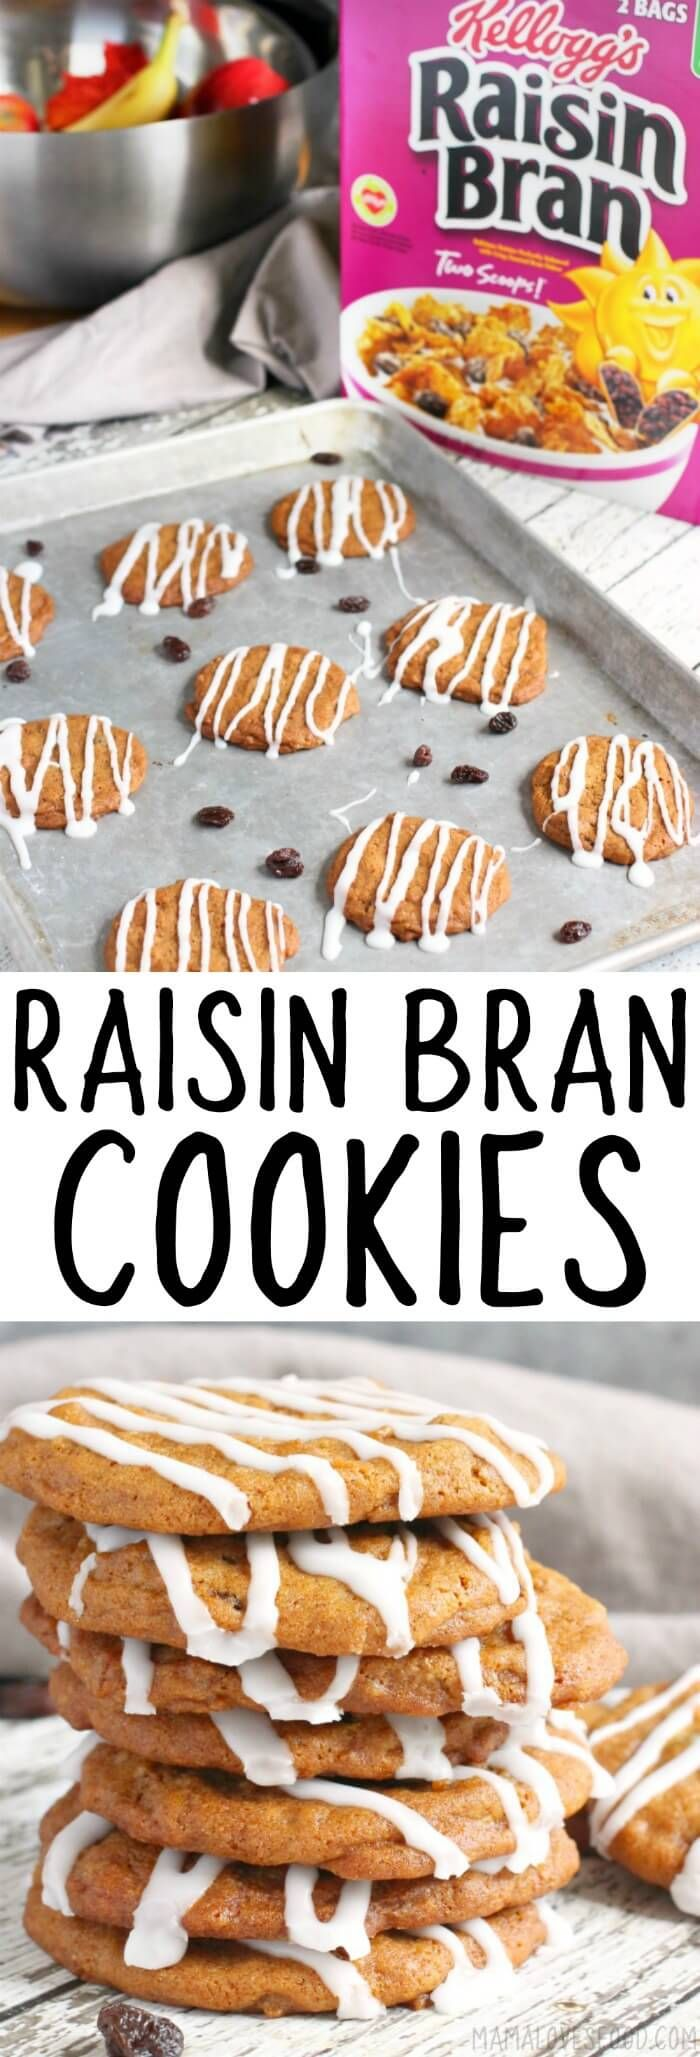 RAISIN BRAN COOKIES - Raisin Bran Cookies are easy to make and taste amazing!  Chewy and delicious, they'll be your family's new favorite cookie! #cookies #cookierecipe #raisinbran